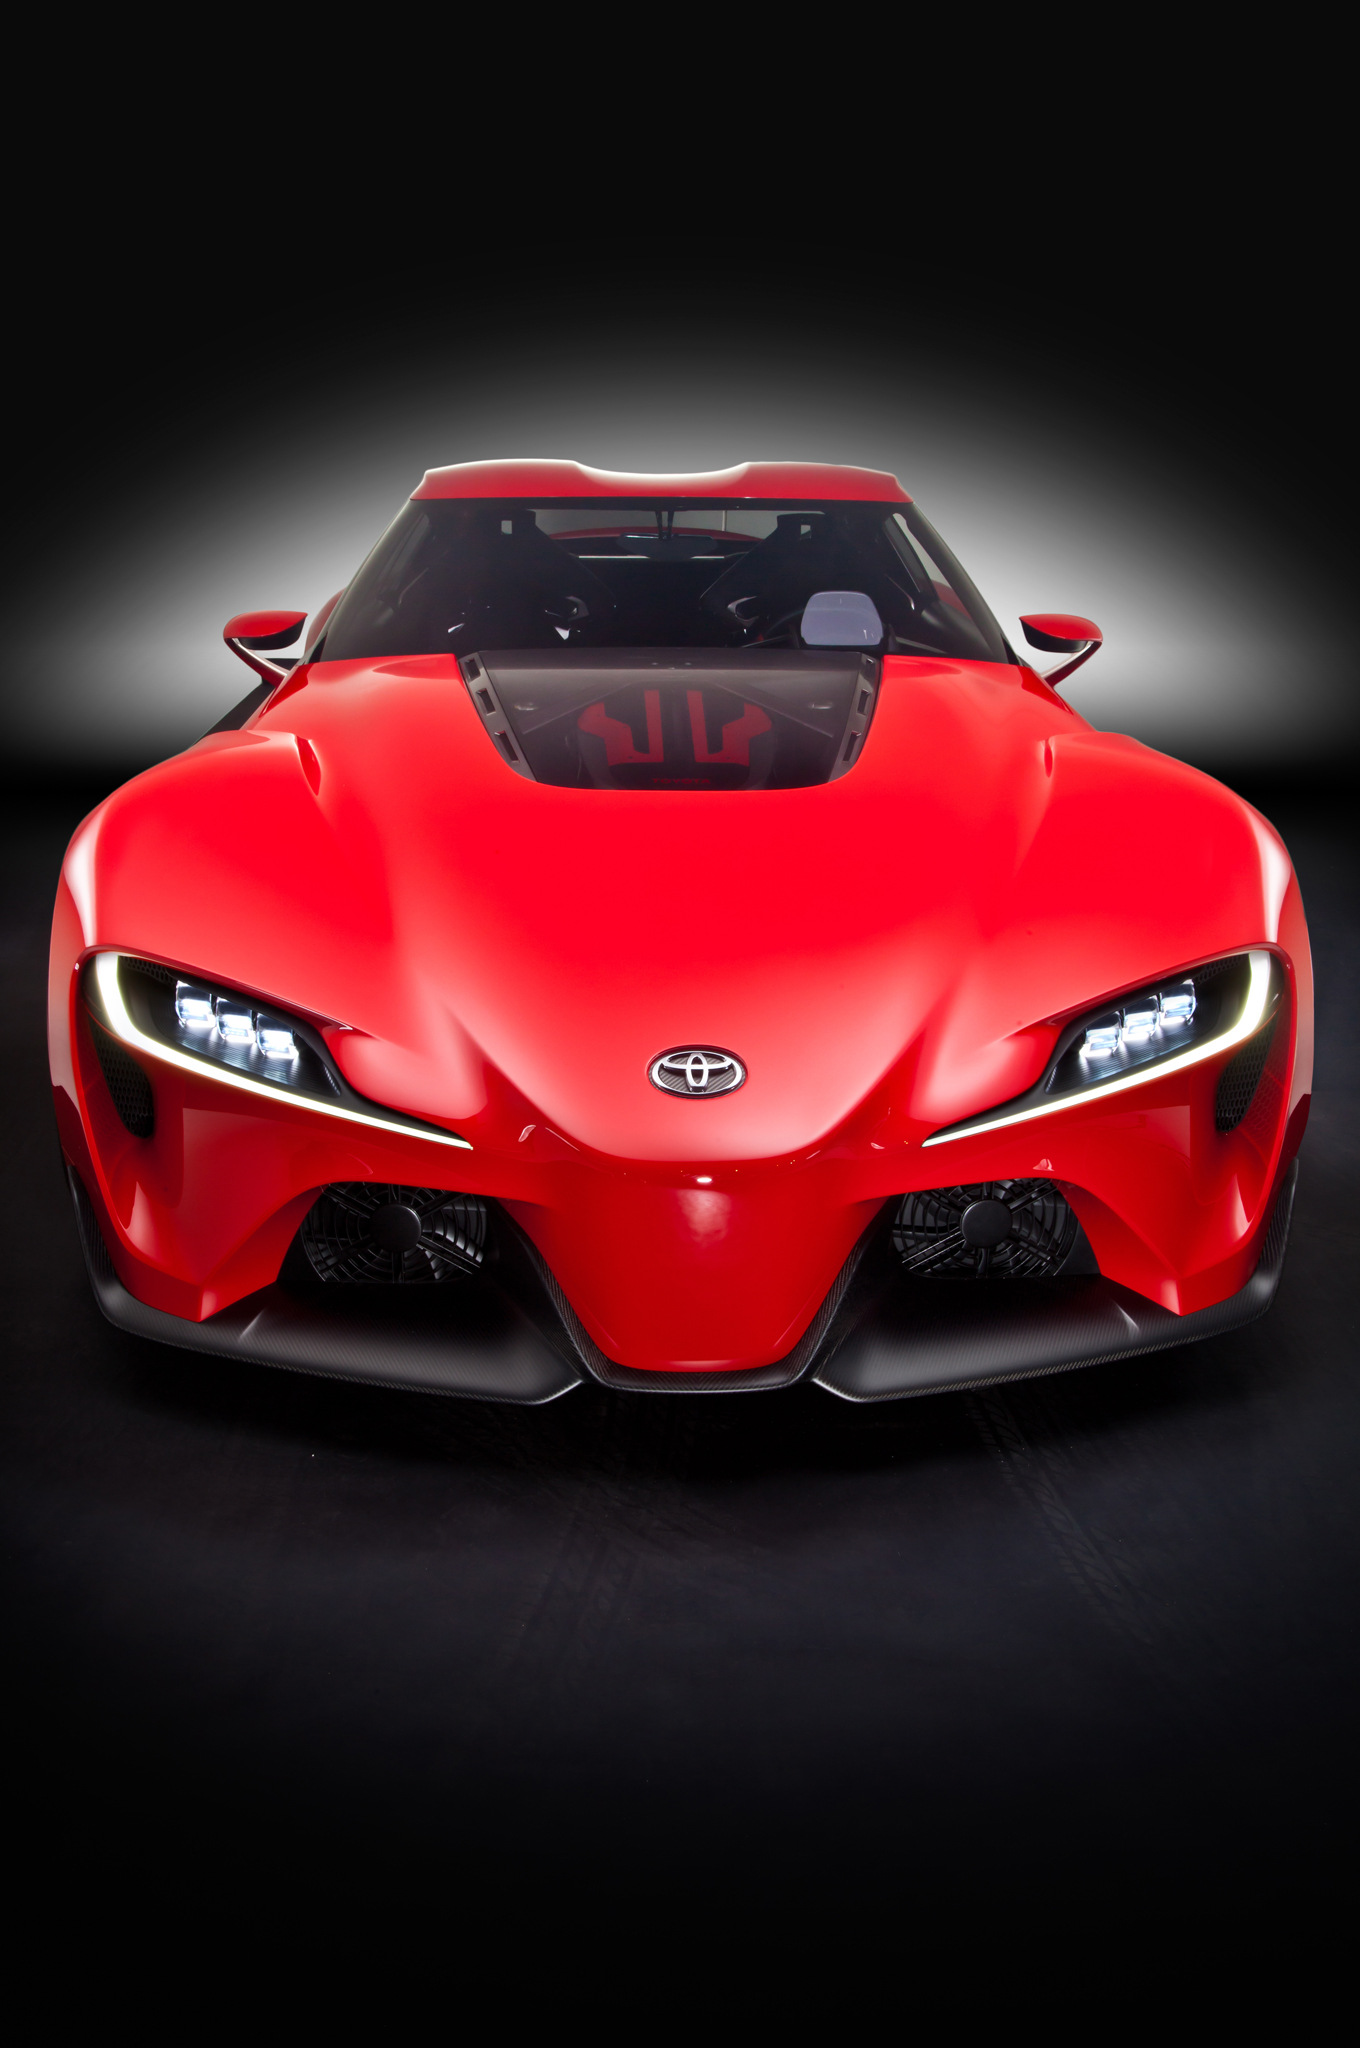 Toyota-FT-1-front-end-02.jpg